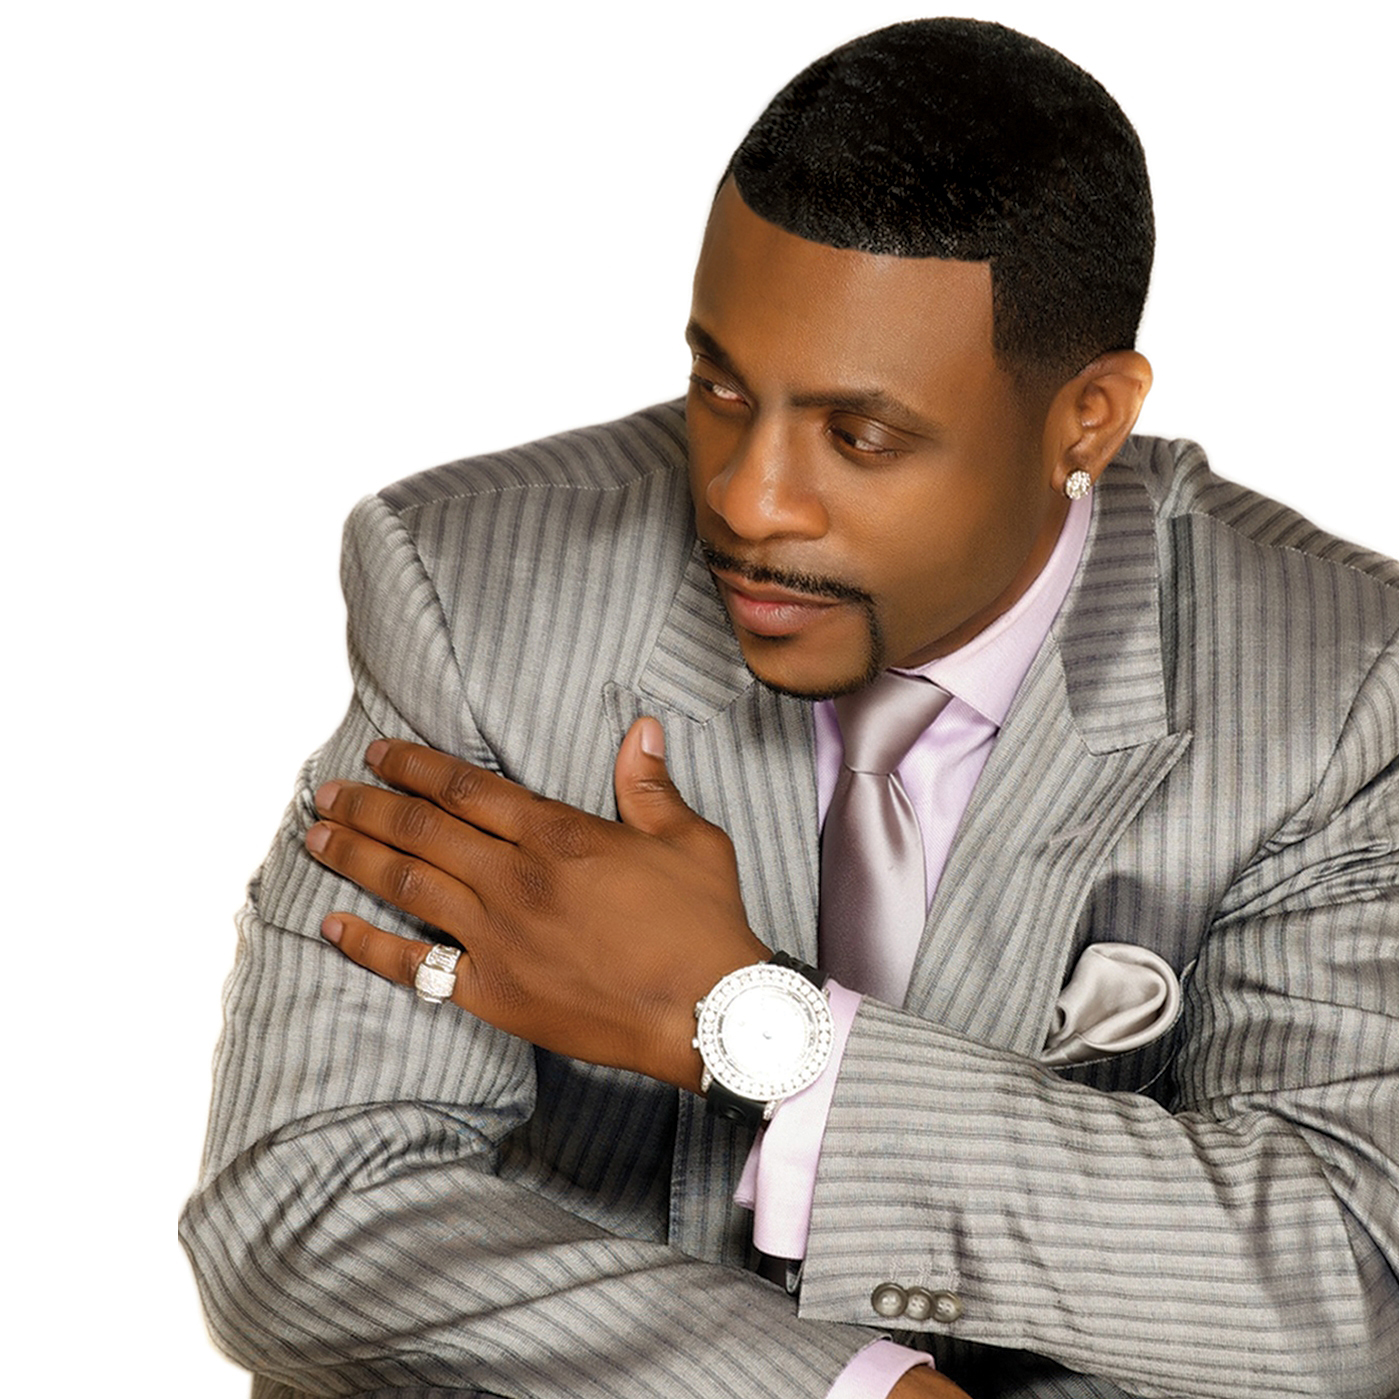 "Keith Sweat, a Harlem-born R&B singer/songwriter known for his distinctive ""whining"" vocal style, co-produced 1984/1985 singles by GQ and Roberta Gilliam and issued independent singles of his own (""Lucky Seven"" and ""My Mind Is Made Up""), but he didn't release his debut full-length, Make It Last Forever, until November 1987. The album sold over three million copies, spawning the hits ""I Want Her"" (number one R&B, number five pop), ""Something Just Ain't Right"" (number three R&B), ""Make It Last Forever"" (number two R&B), and ""Don't Stop Your Love"" (number nine R&B). It was followed in 1990 by I'll Give All My Love to You, another million-seller, which featured the hits ""Make You Sweat"" (number one R&B, number 14 pop), ""Merry Go Round"" (number two R&B), ""I'll Give All My Love to You"" (number one R&B, number seven pop), and ""Your Love, Pt. 2"" (number four R&B). Sweat's third album was Keep It Comin', an R&B chart-topper at the end of 1991, whose title track was another number one R&B hit. From then on, his profile slowly dipped, but he maintained a devoted following while recording the occasional contemporary set, including Get Up on It (1994), Keith Sweat (1996), Still in the Game (1998). Didn't See Me Coming (2000), Rebirth (2002), Just Me (an R&B chart-topper in 2008), Ridin' Solo (2010), and 'Til the Morning (2011). Two albums recorded with Gerald LeVert and Johnny Gill, billed as LSG (and released in 1997 and 2003), were considerably successful, and he also produced a handful of '90s acts (Silk, Kut Klose, Ol' Skool, Dru Hill). During the 2000s, he hosted a syndicated radio program called   The Sweat Hotel   and starred in the Centric channel's reality program   Keith Sweat's Platinum House  , in which he facilitated a turbulent Dru Hill reunion."